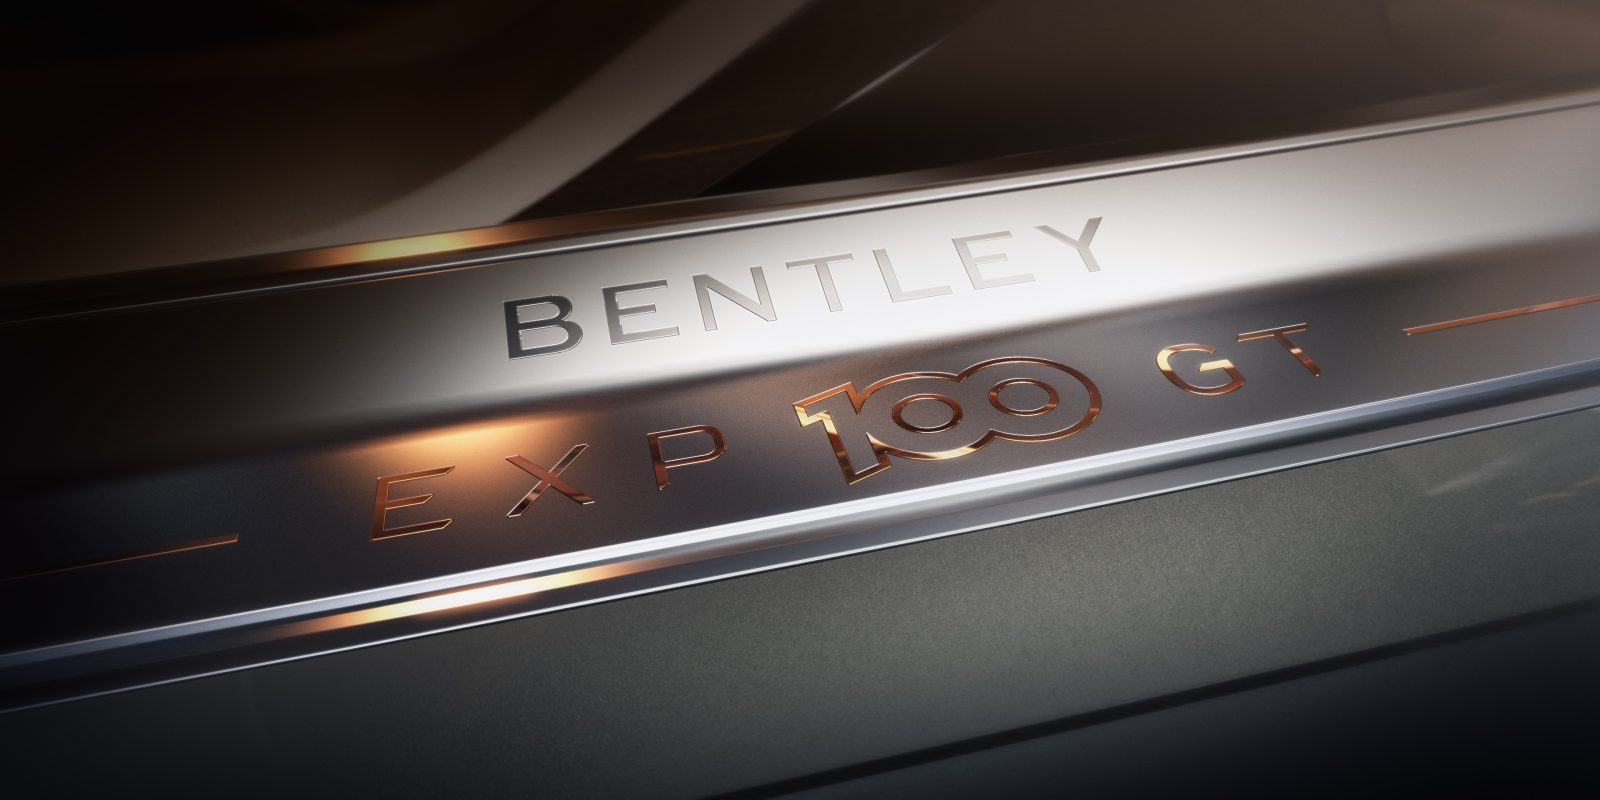 Bentley teases EXP 100 GT zero emissions concept car before unveiling next week